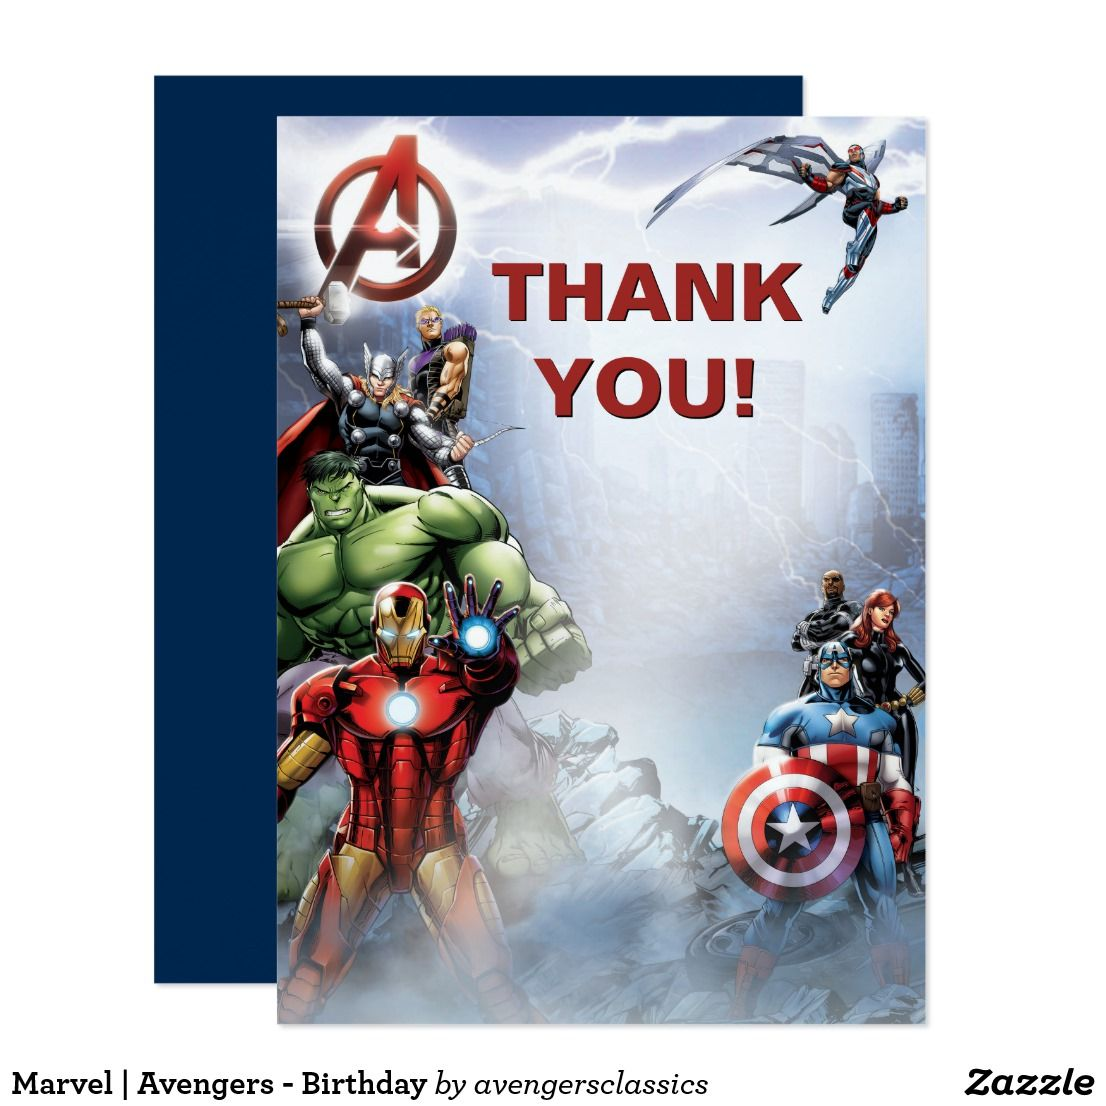 Marvel Avengers Birthday Thank You Card Zazzle Com Birthday Thank You Cards Birthday Card Template Avengers Birthday